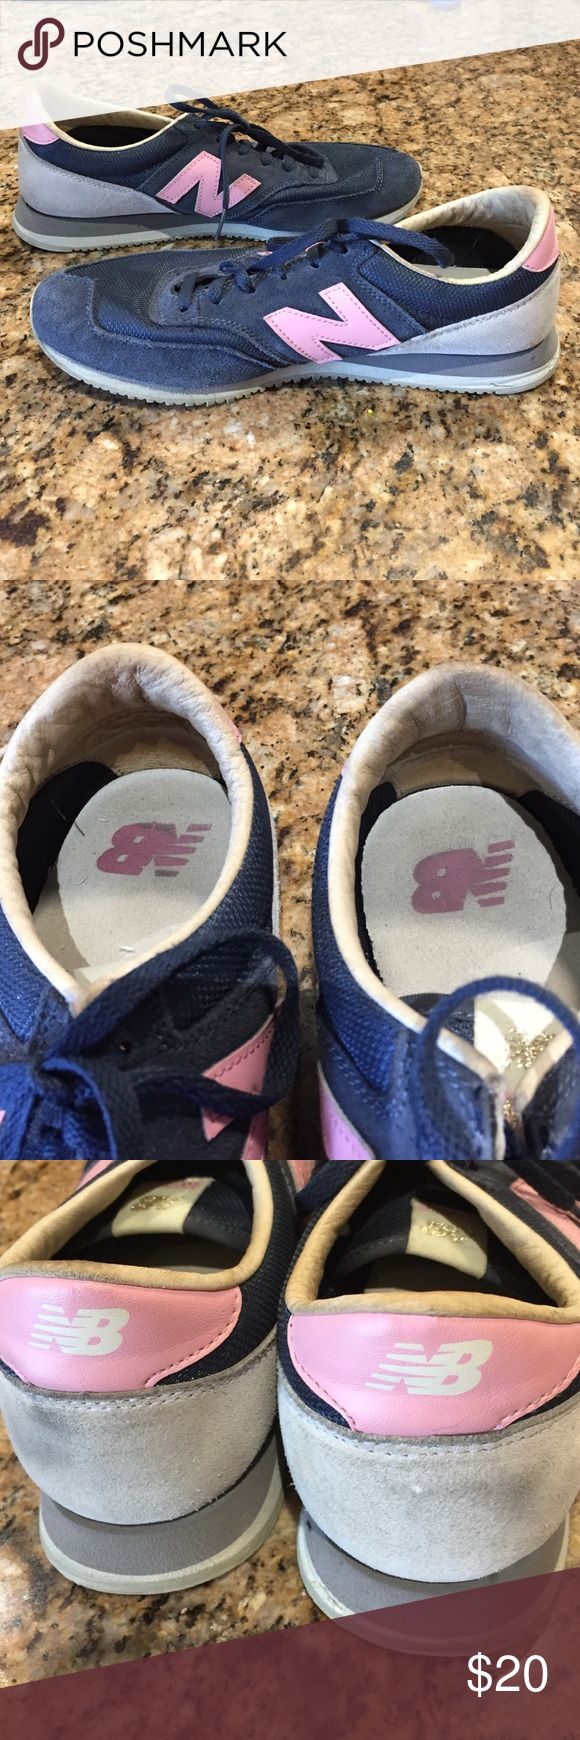 New Balance 620 Women's Sneakers New Balance women's sneakers. Slight discoloration on back of shoe. See pictures. New Balance Shoes Sneakers